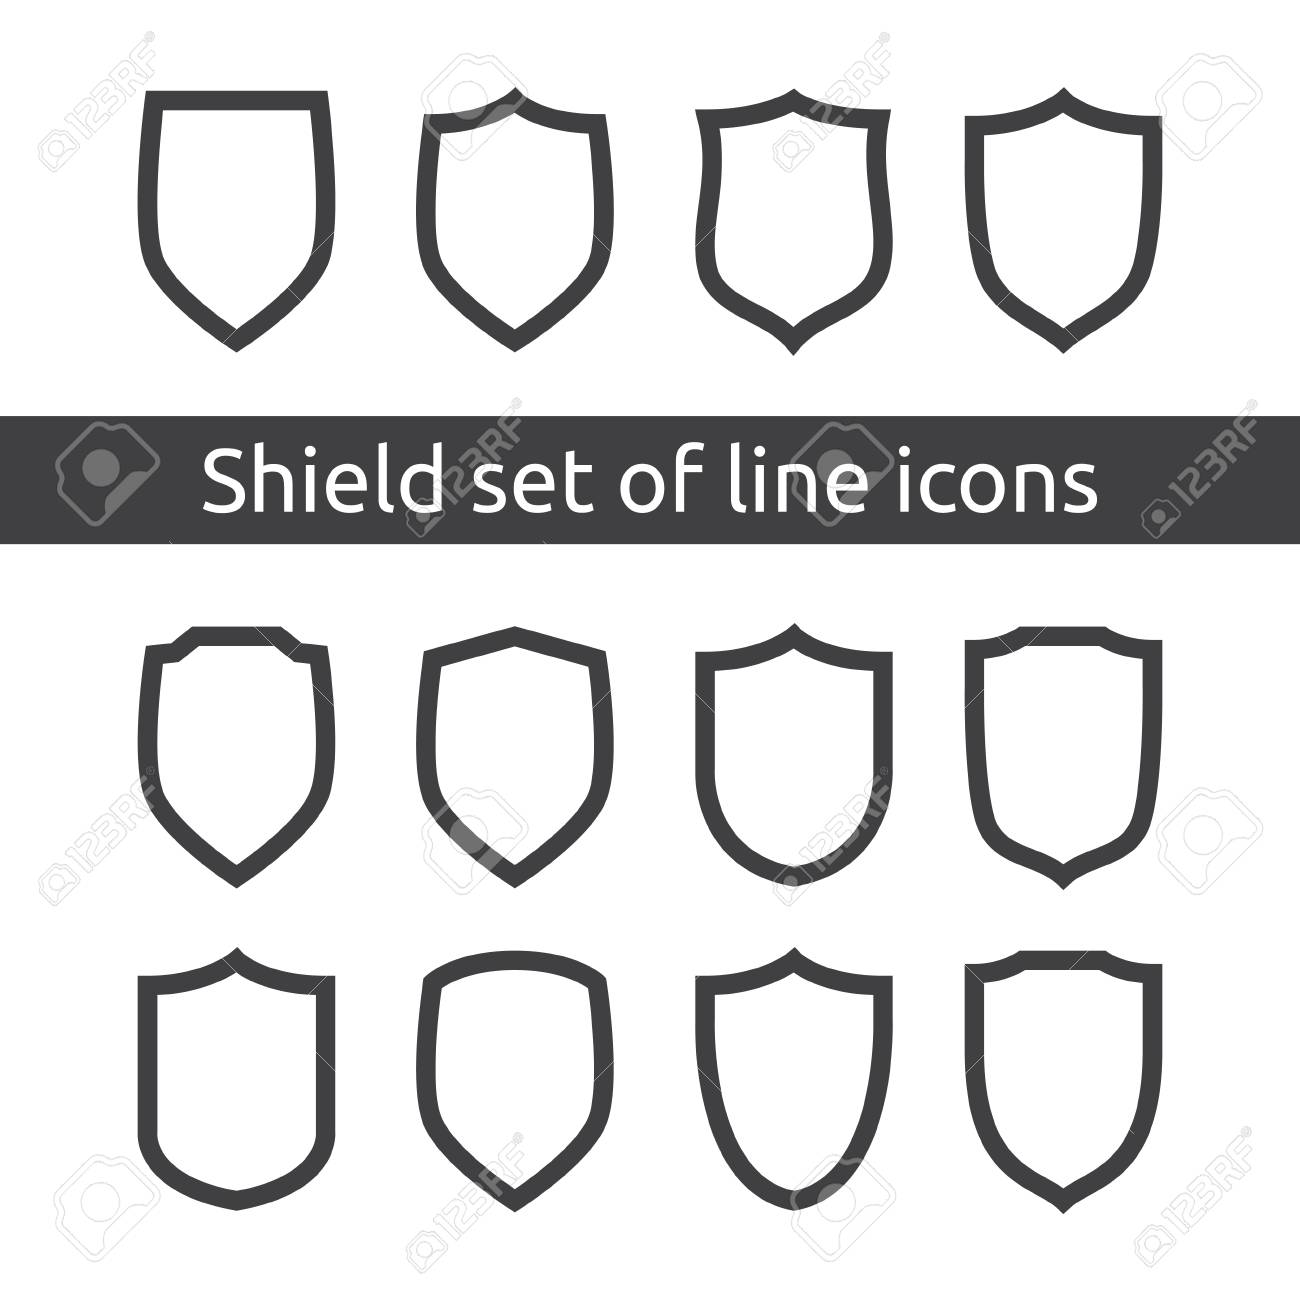 shield logo symbol icon set with outline line style  vector illustration